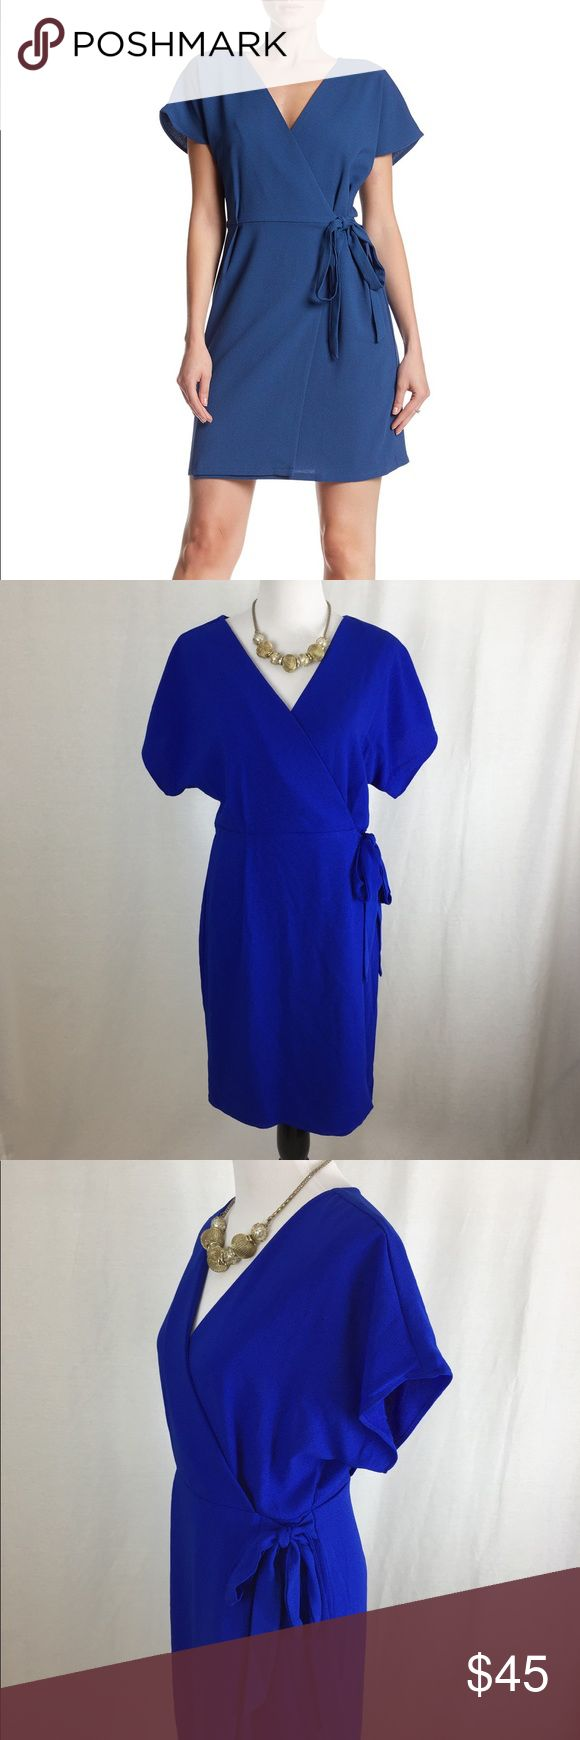 Bobeau Crepe Wrap Dress Nwt Electric Blue Wrap Dress Size